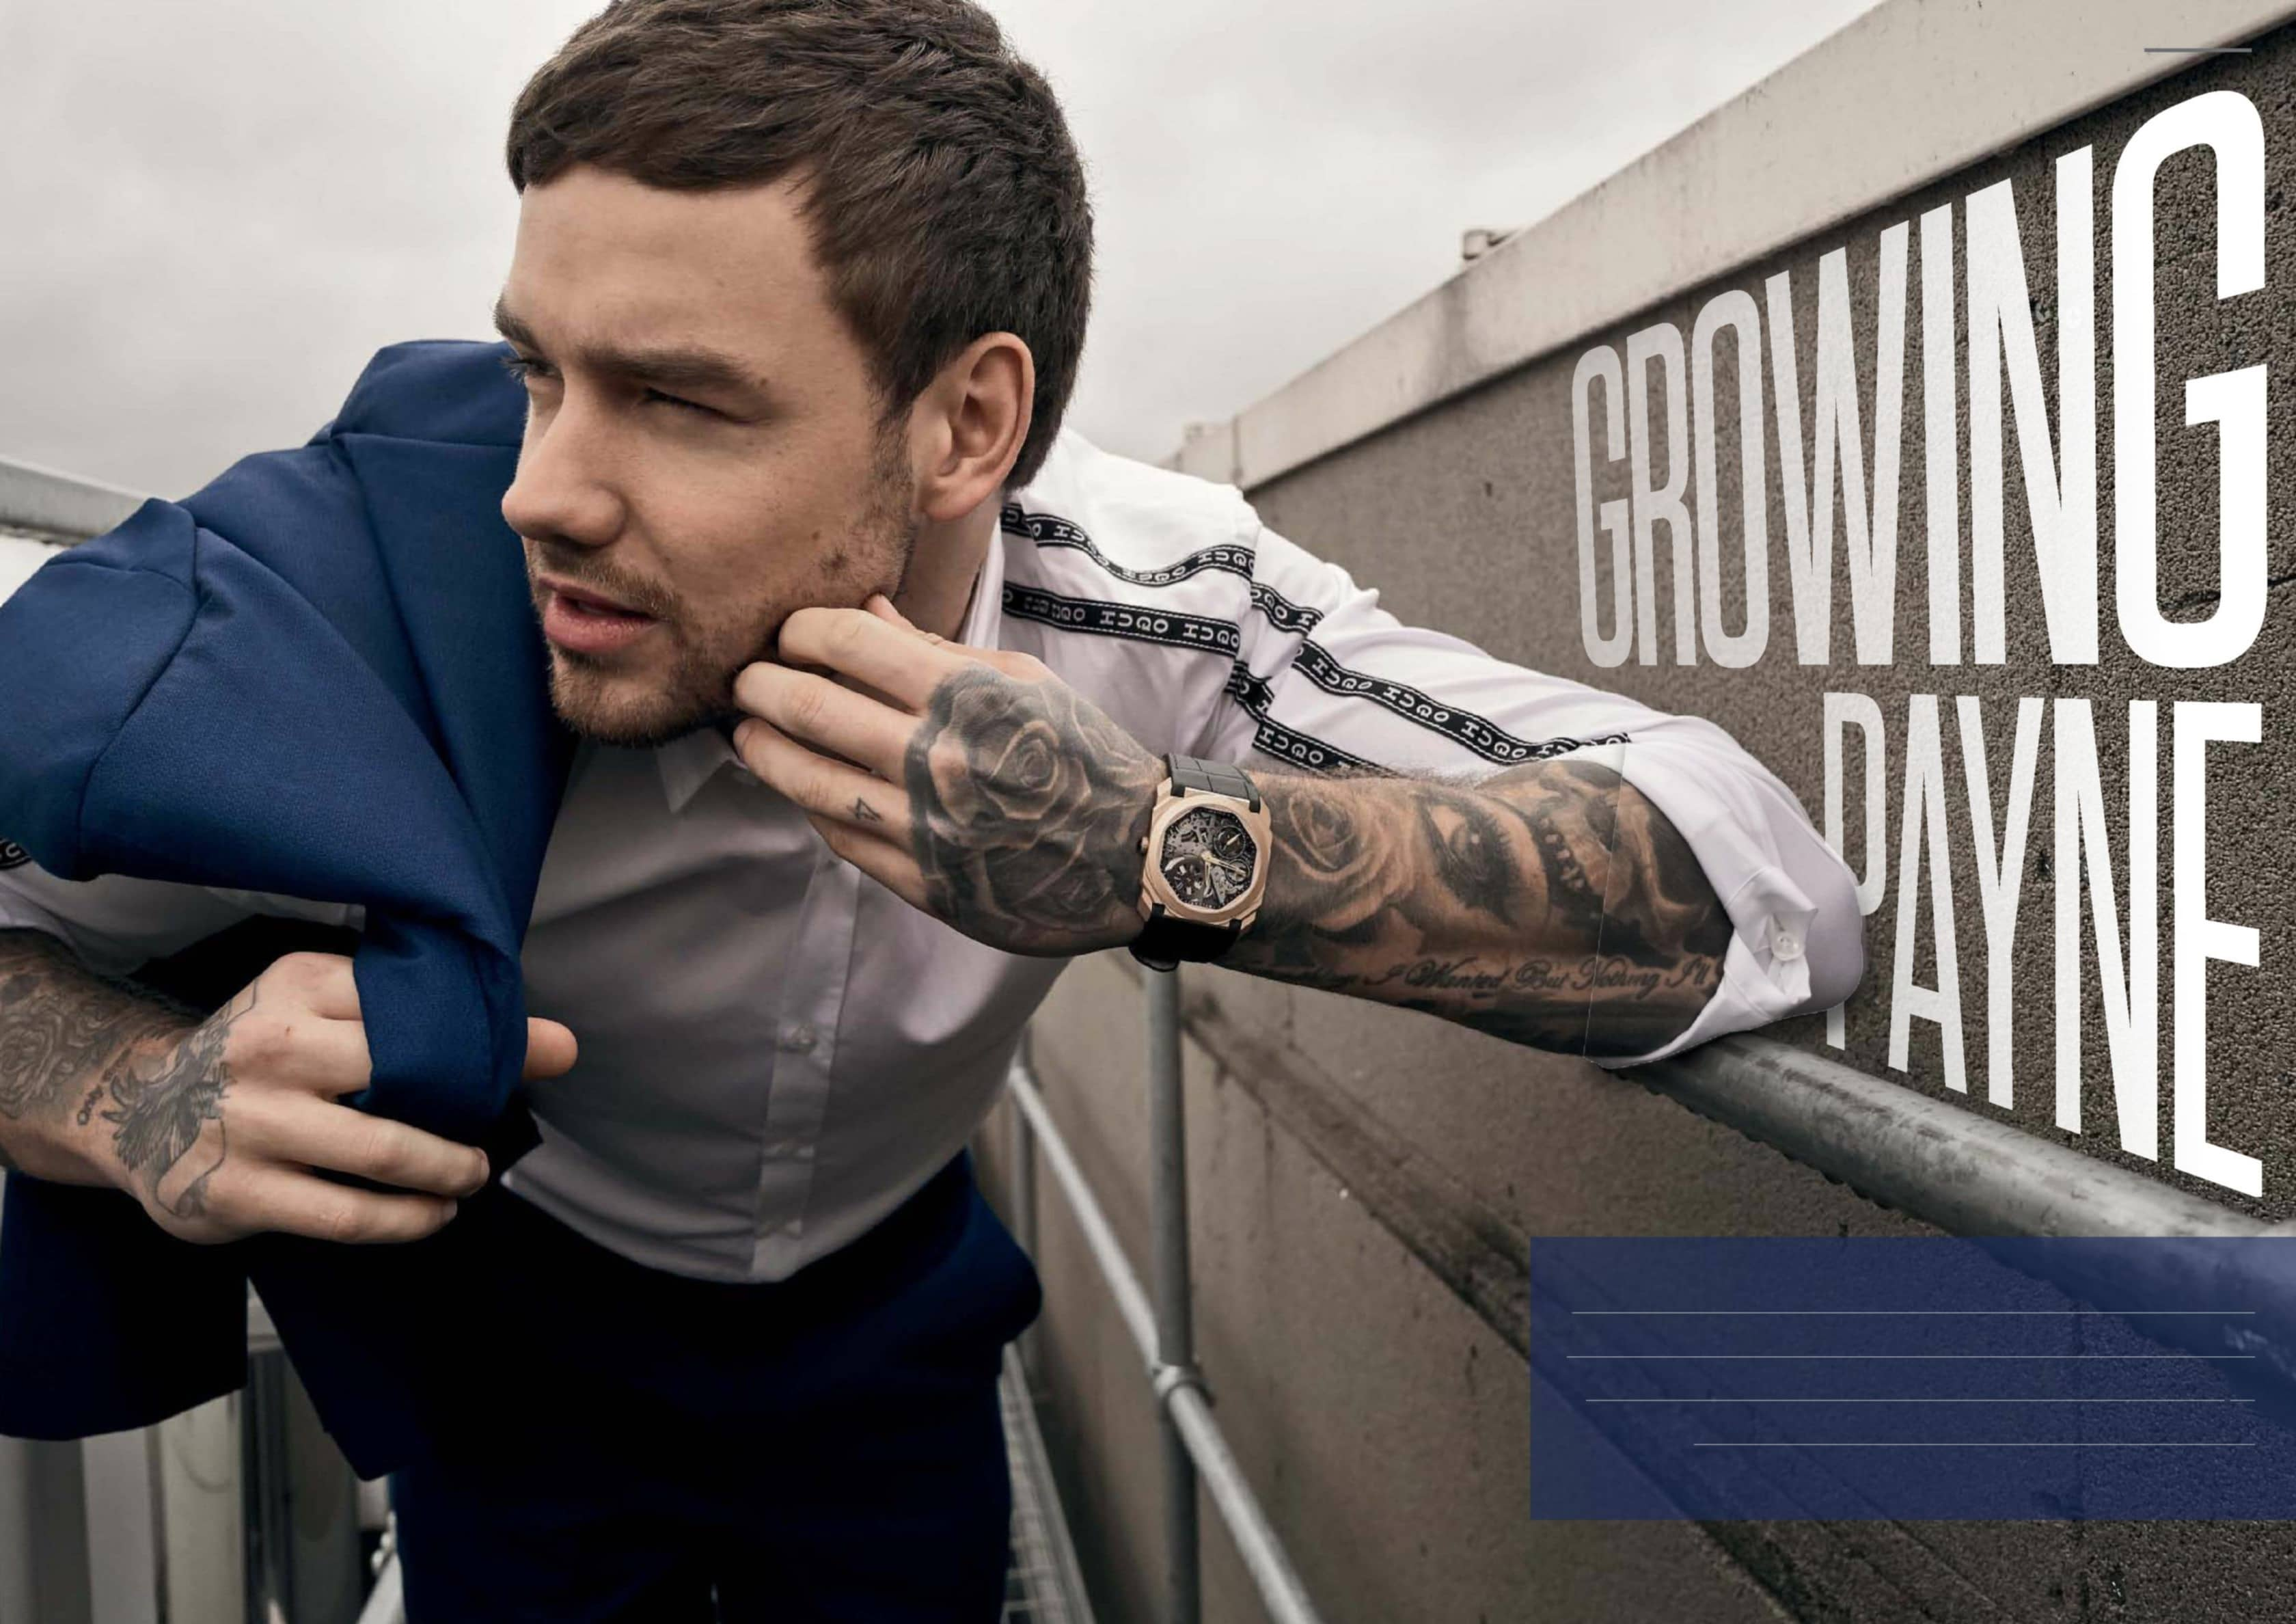 Growing Payne